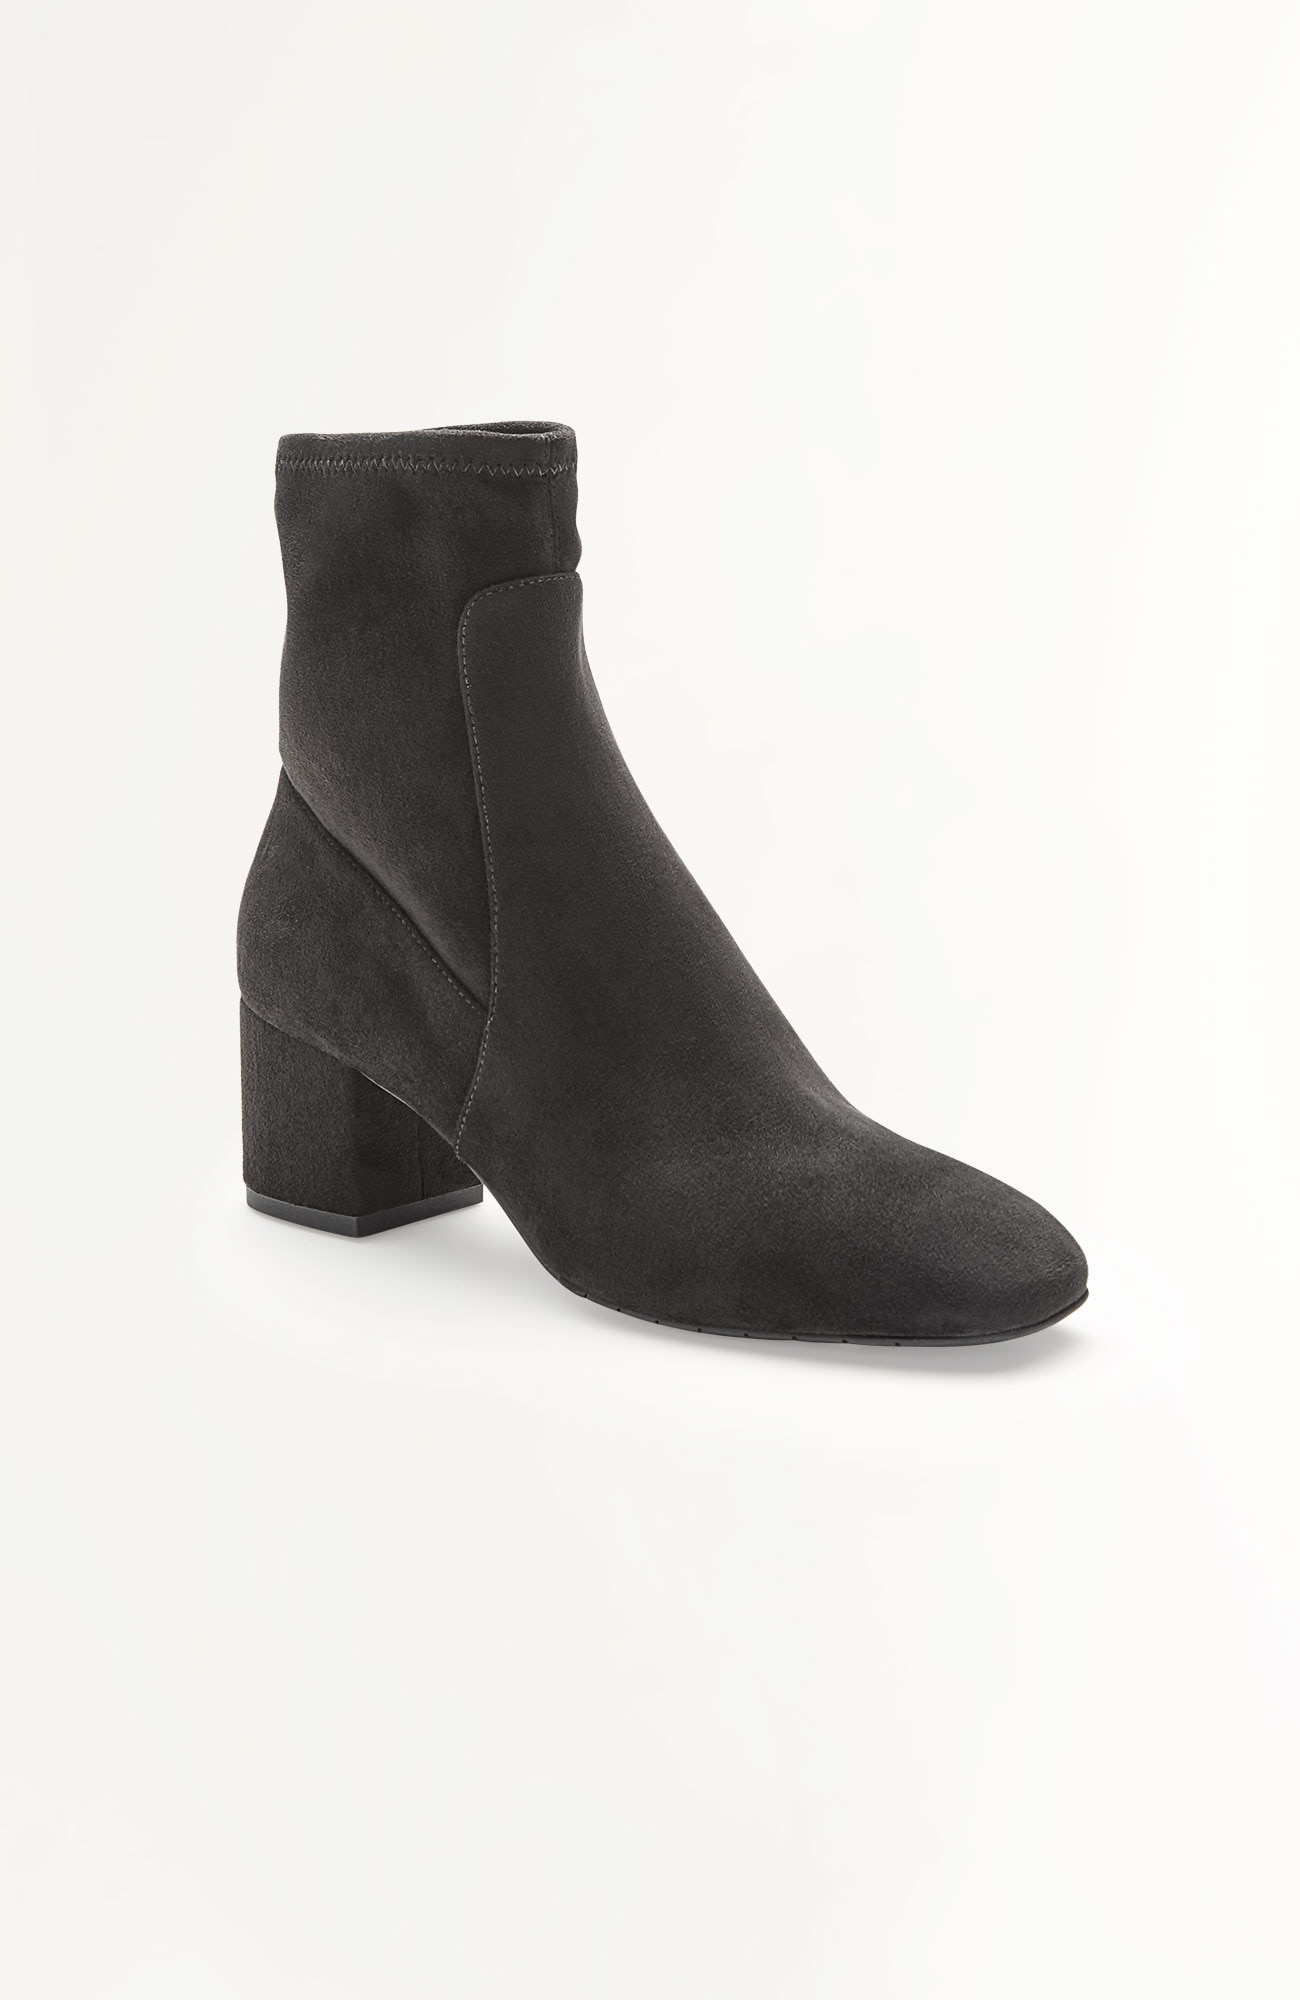 Kenneth Cole Nikki boots